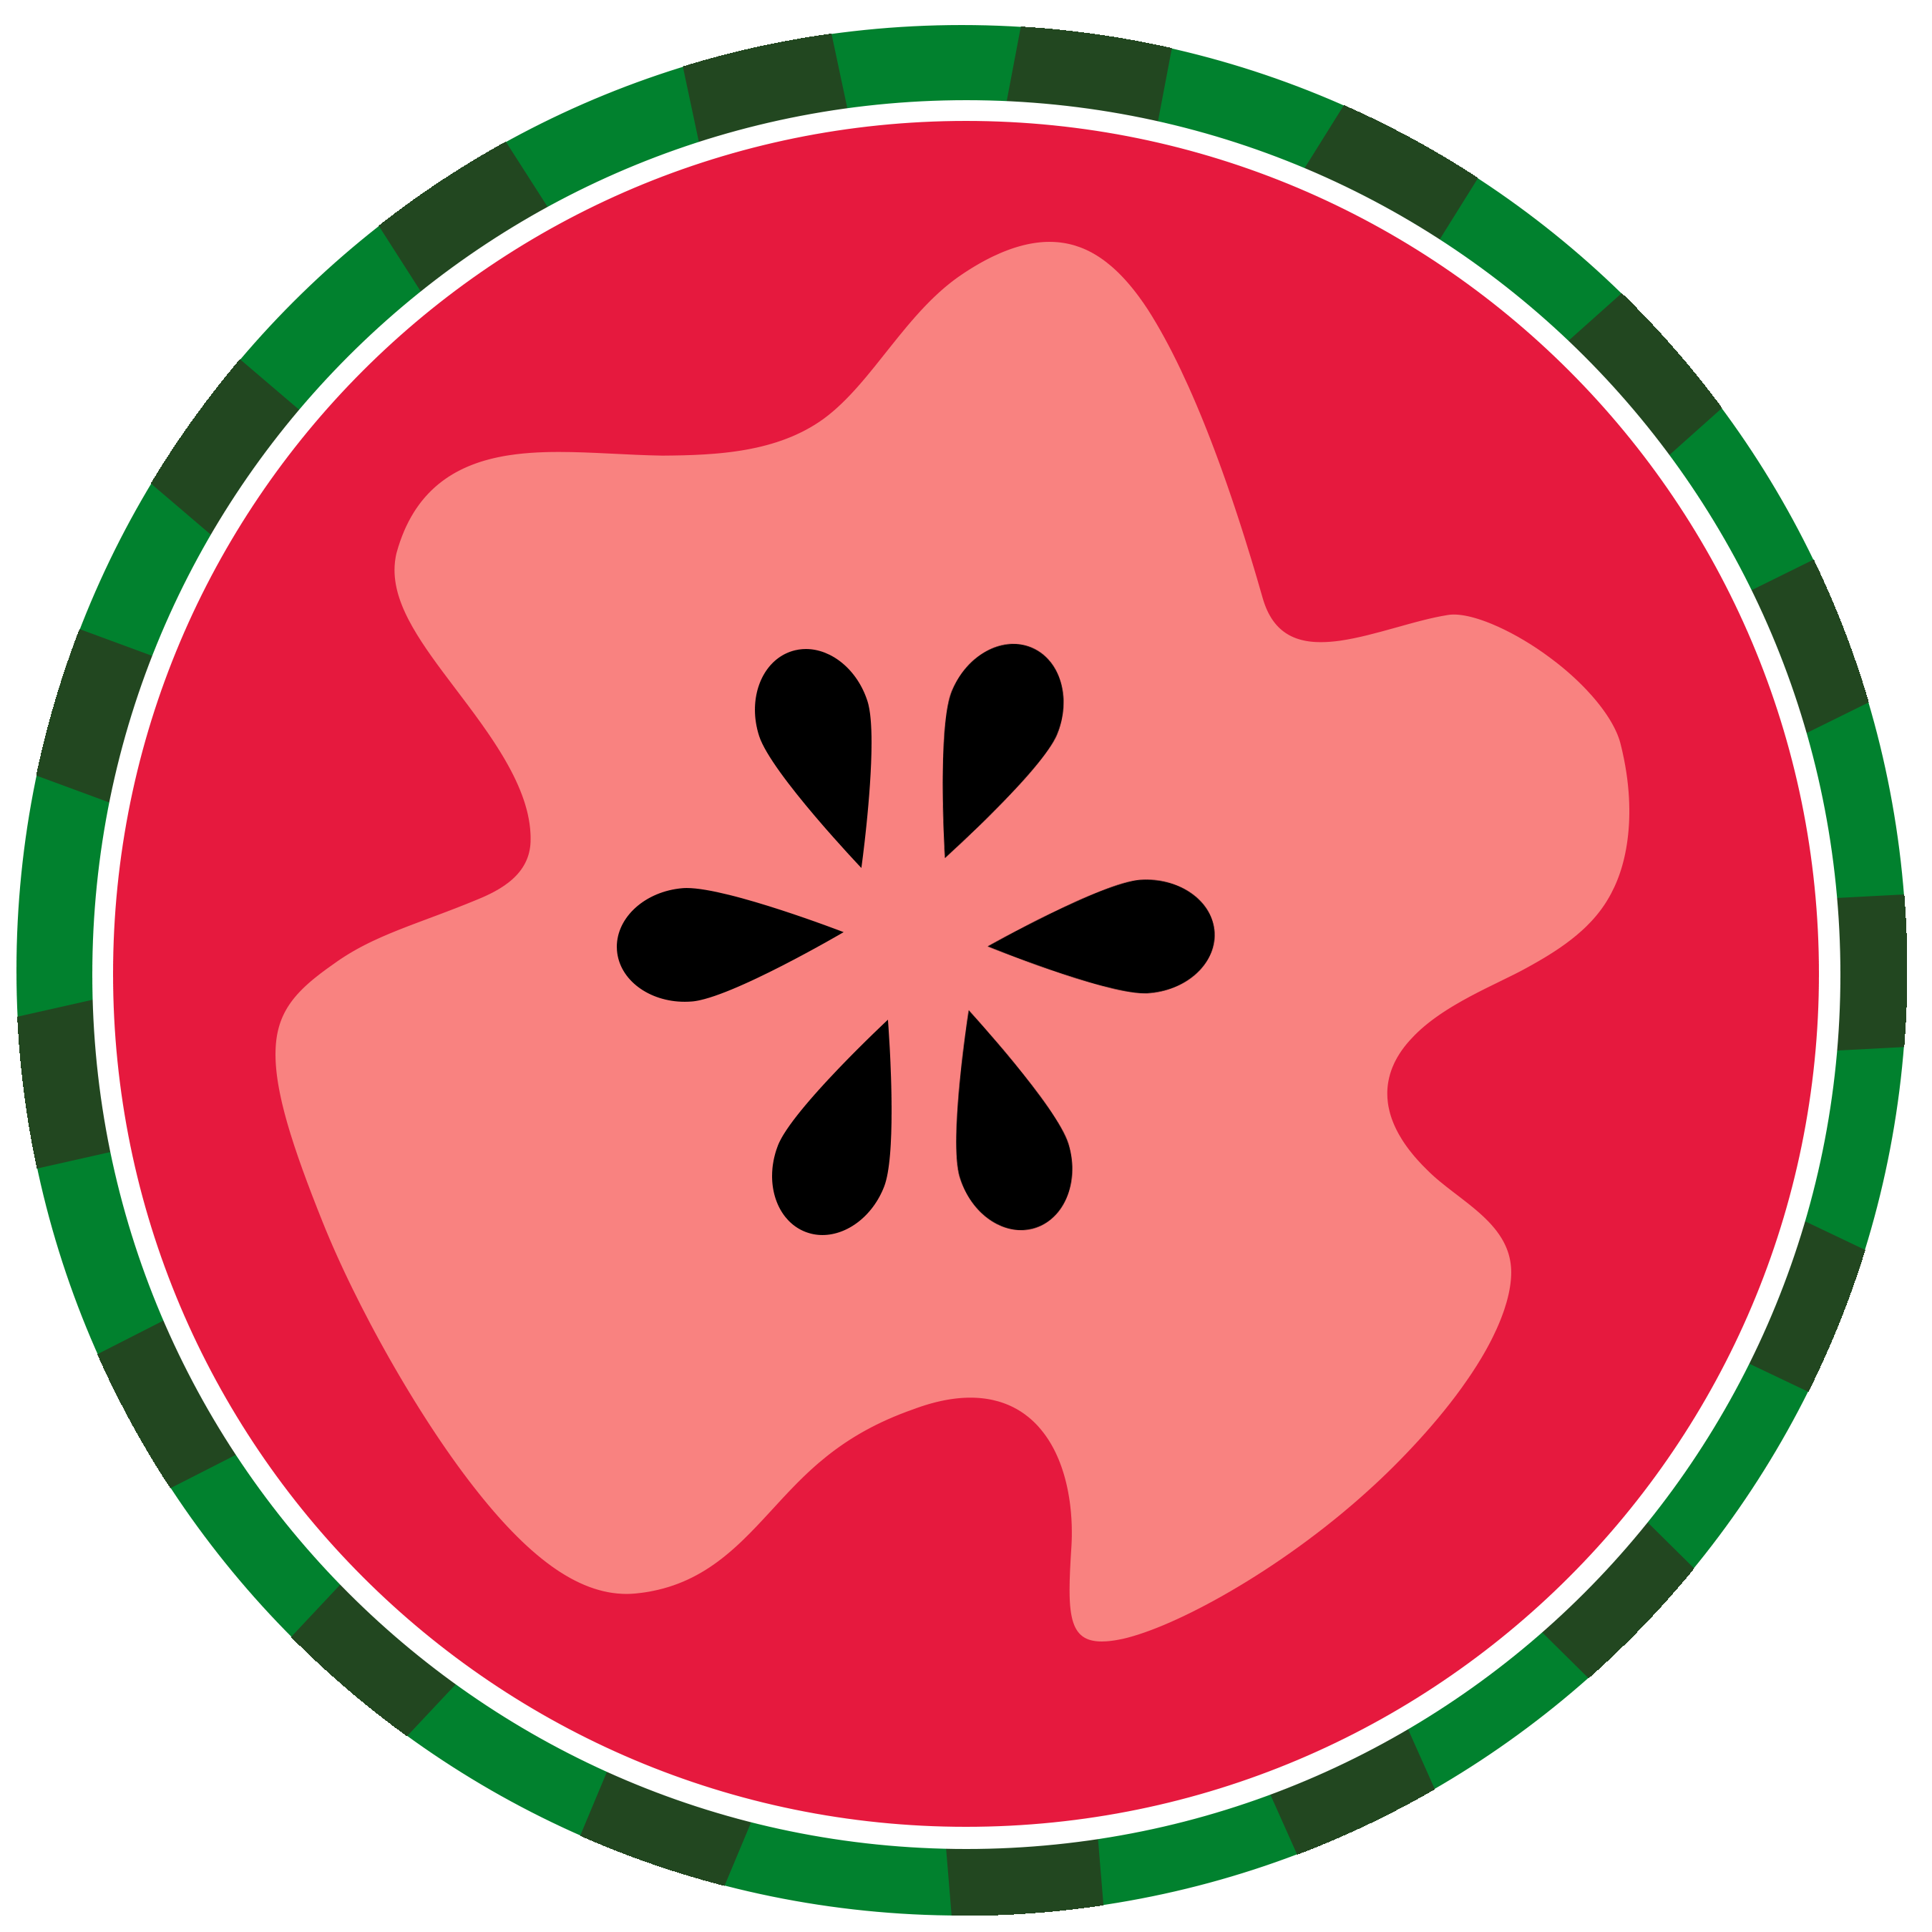 Watermelon clipart #1, Download drawings